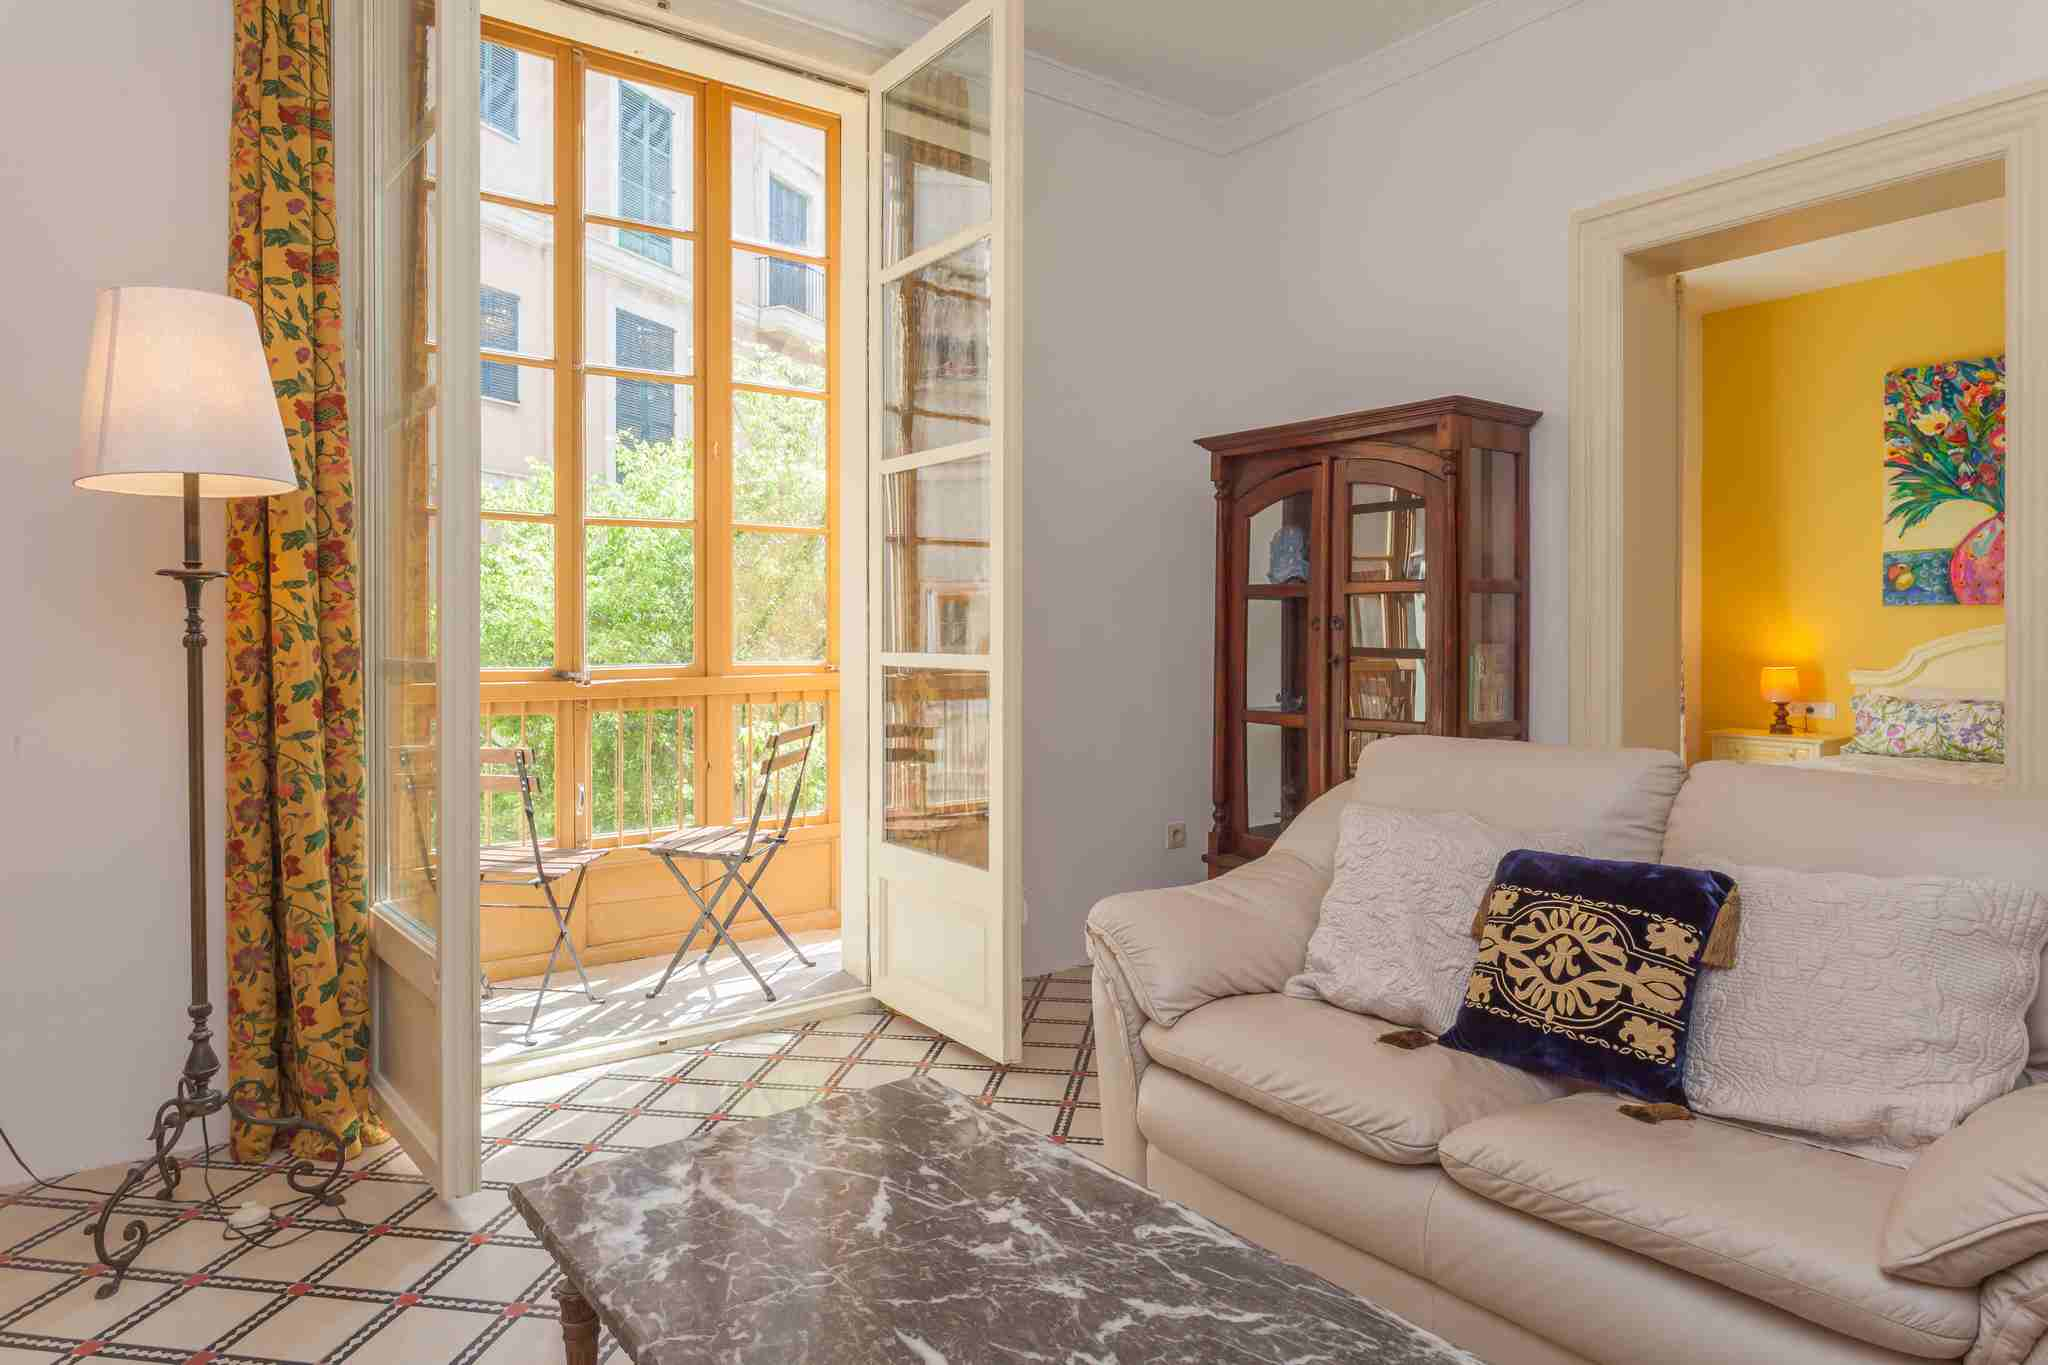 Cozy and bright apartment in the heart of the City @ Palma de Mallorca